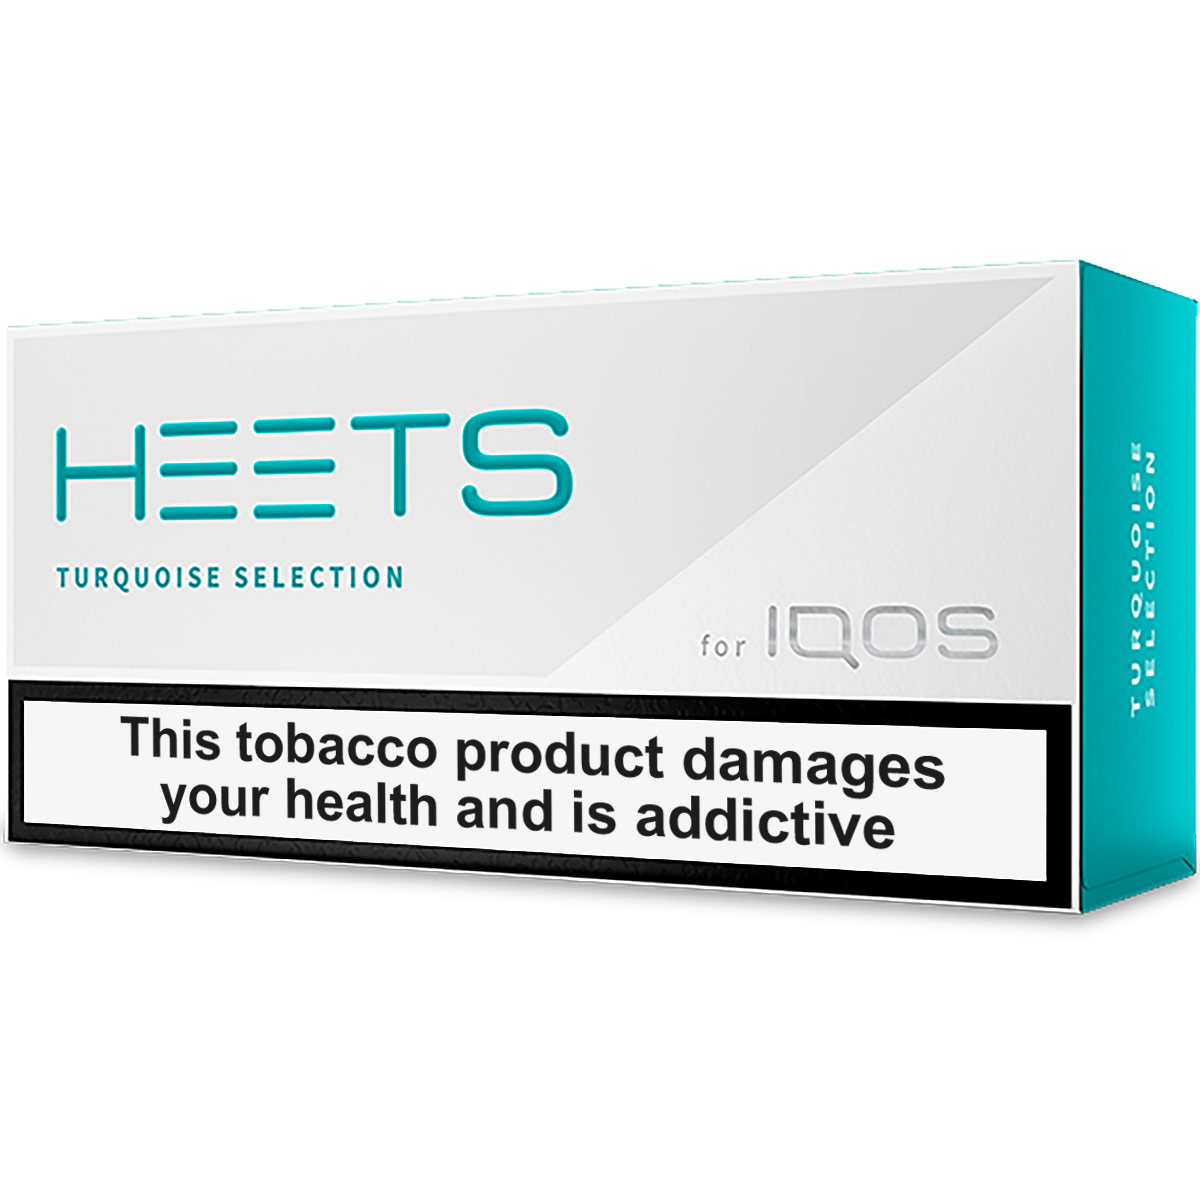 Heets - Turquoise Selection (Central Asia)